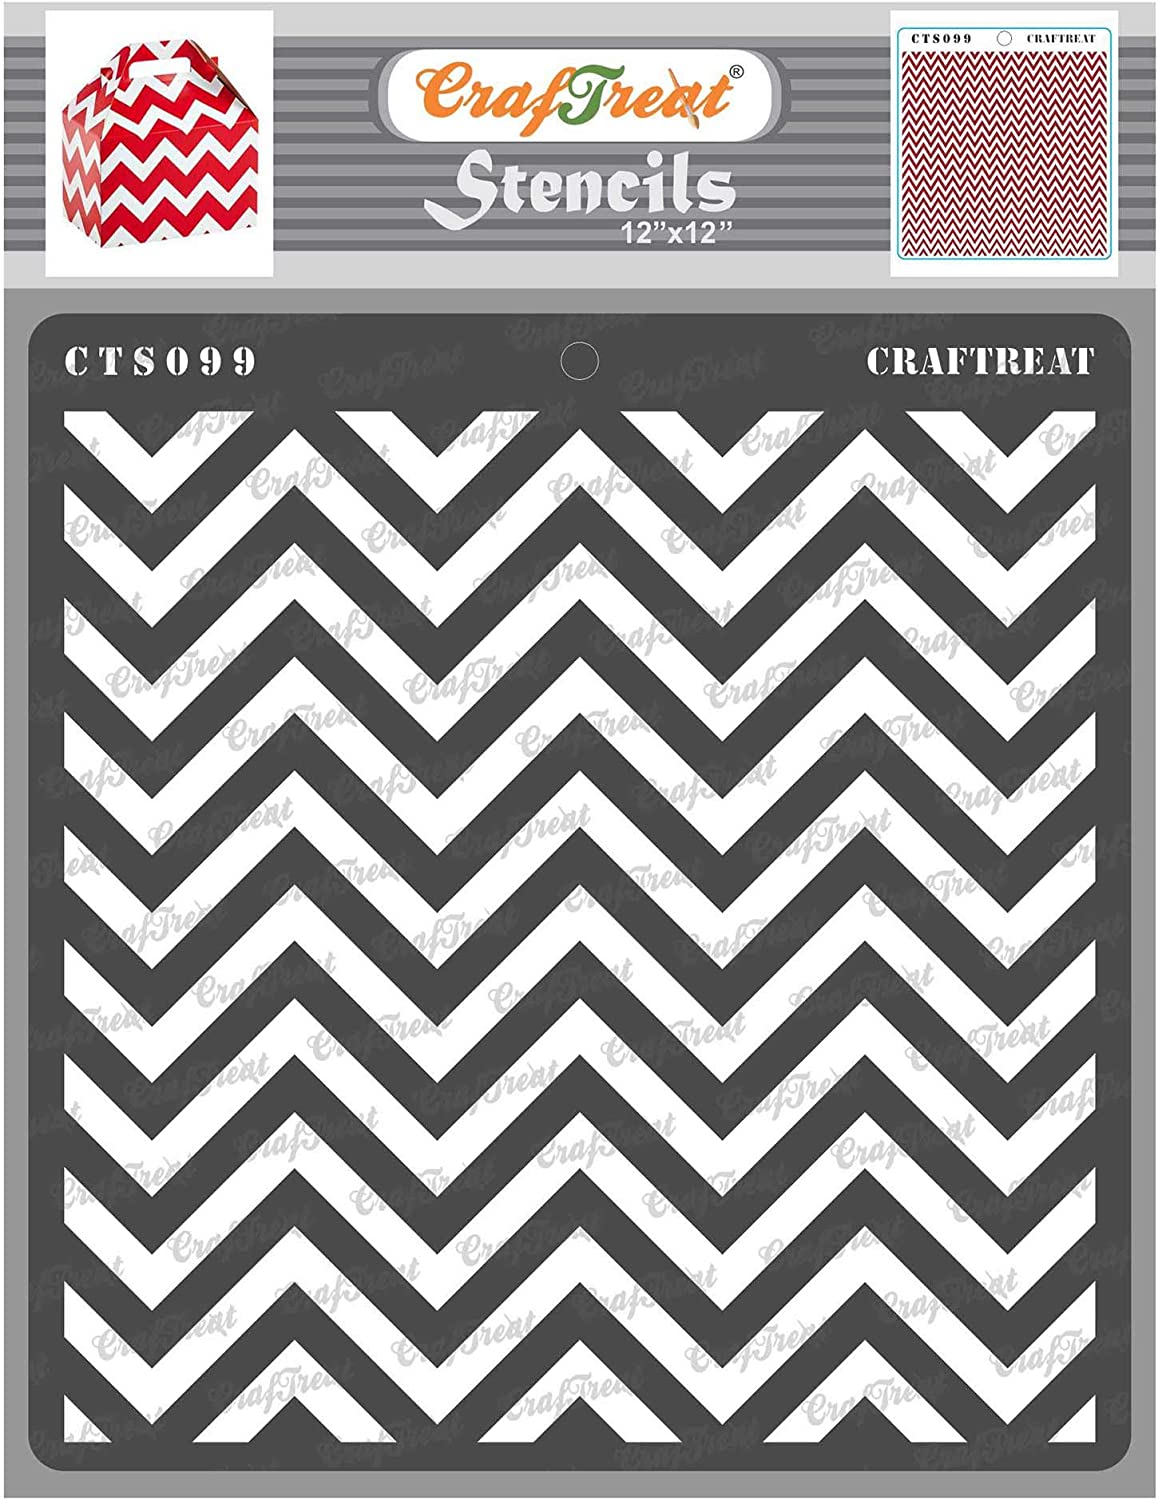 CrafTreat Chevron Wall Stencils for Painting Large Pattern - Chevron - 12x12 Inches - Reusable DIY Art and Craft Stencils - Chevron Stencils for Painting on Wood - Chevron Stencil for Walls